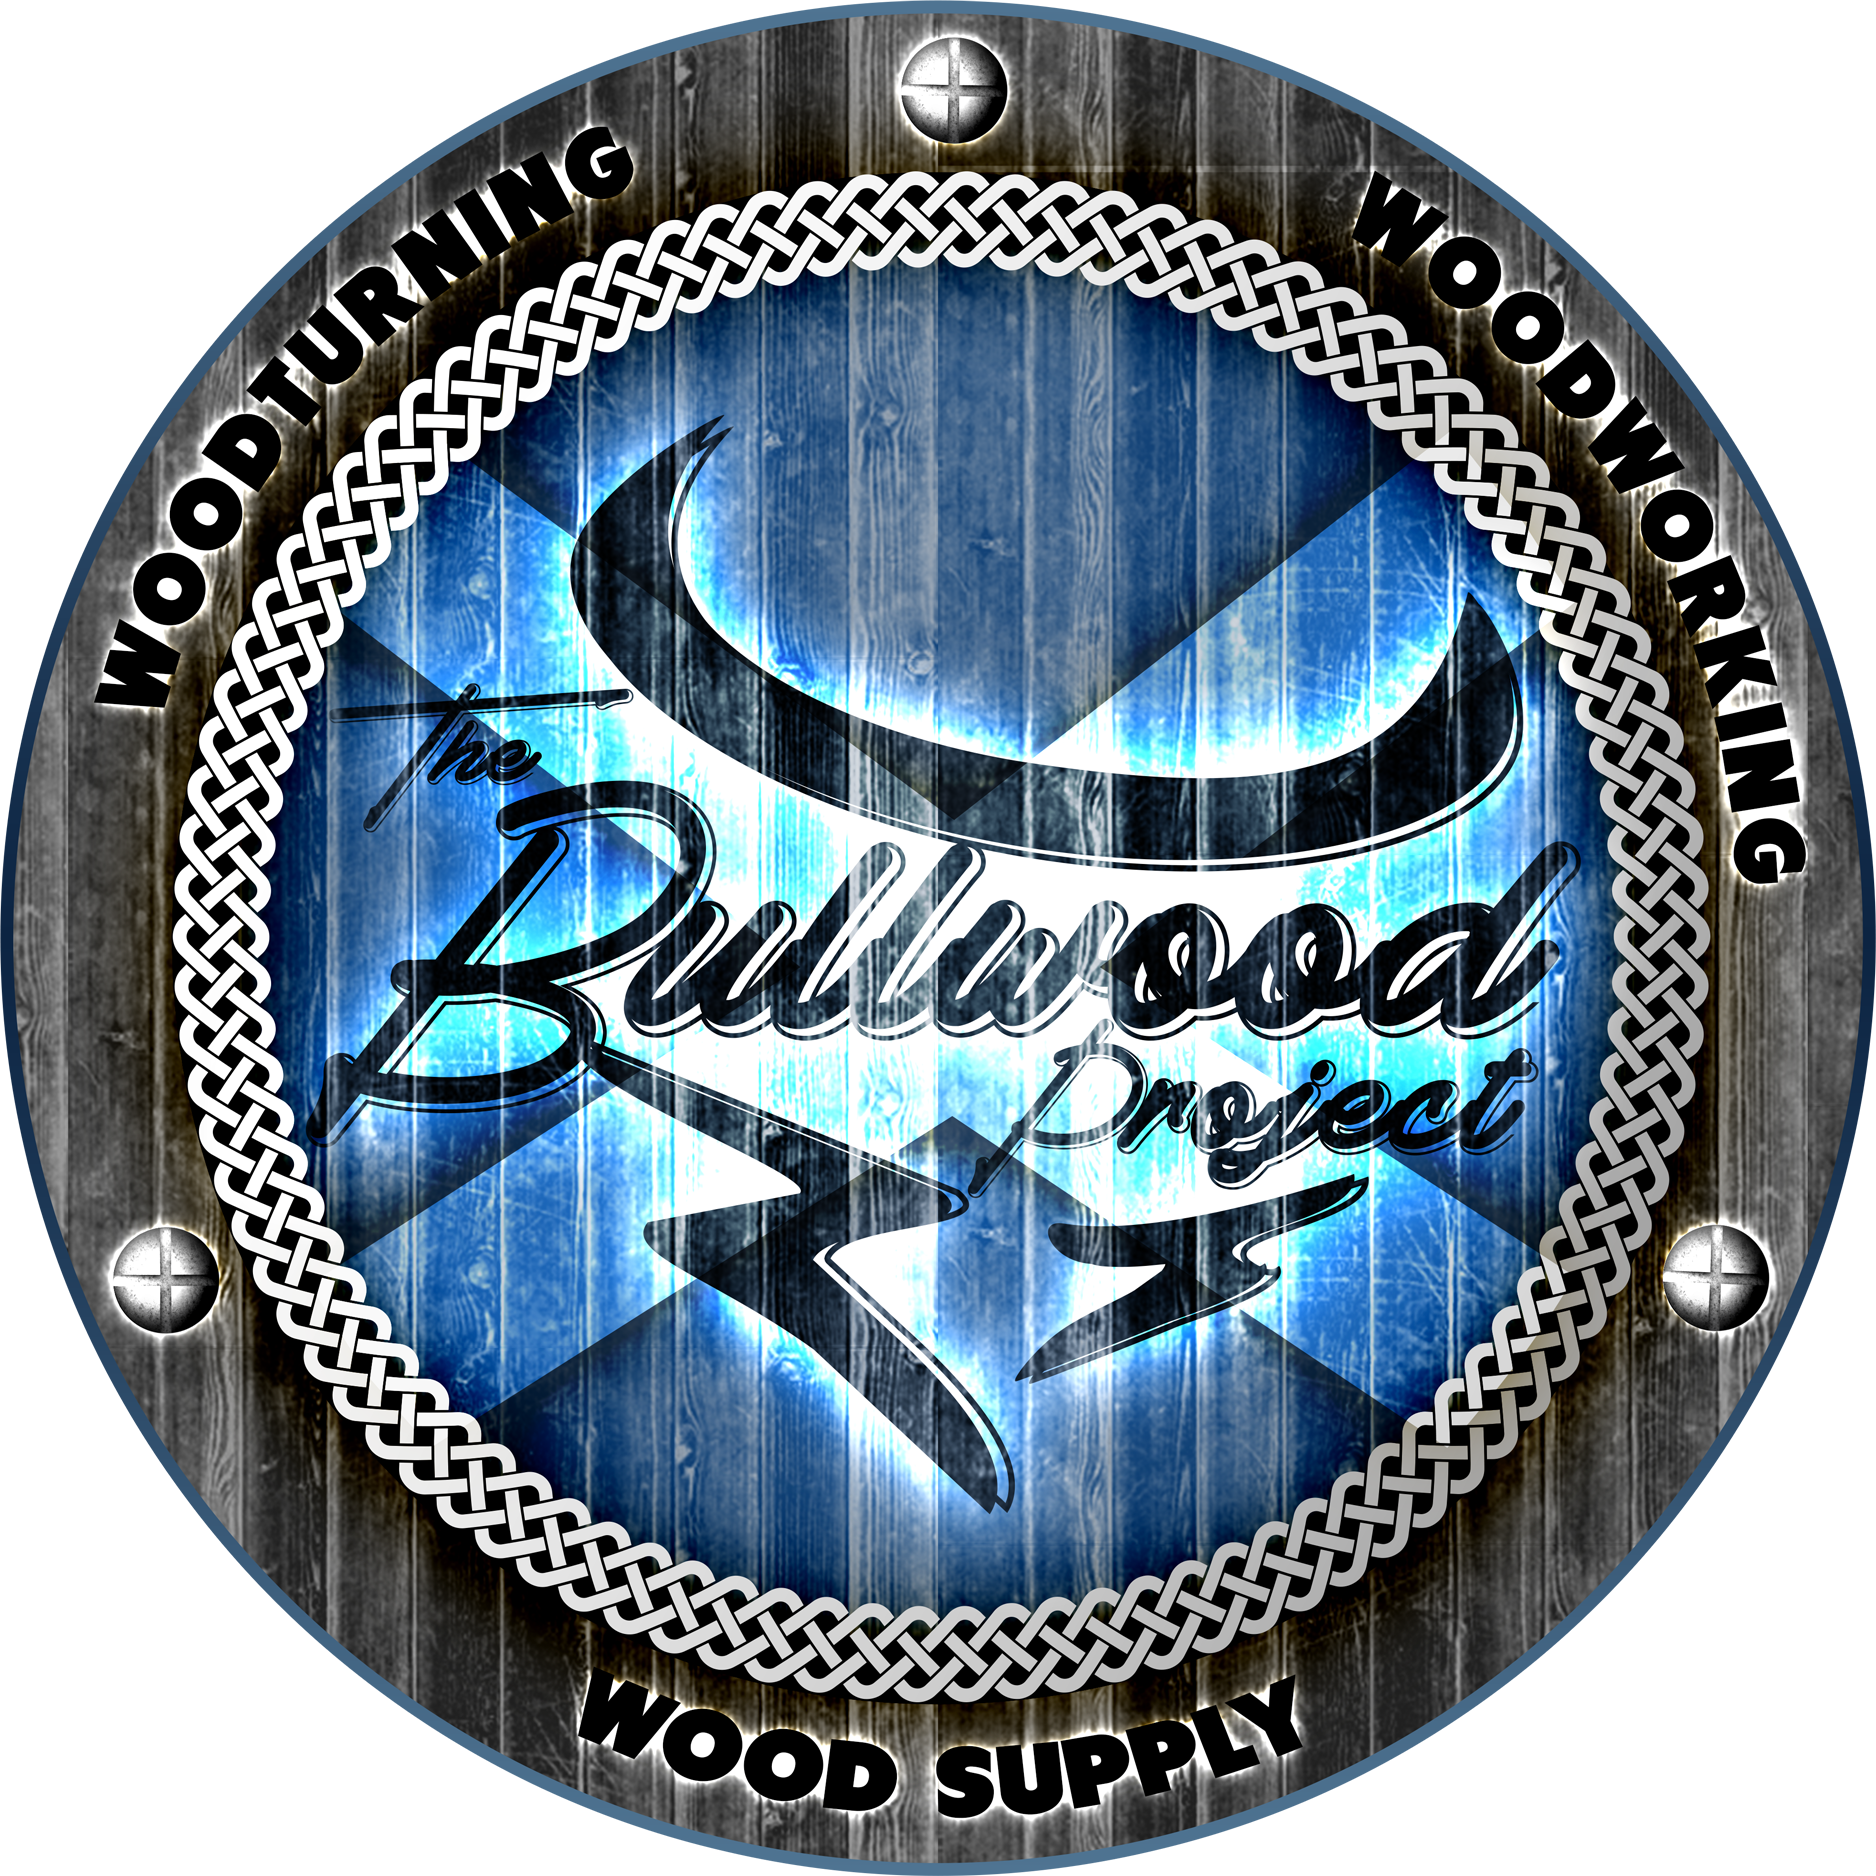 The Bullwood Project